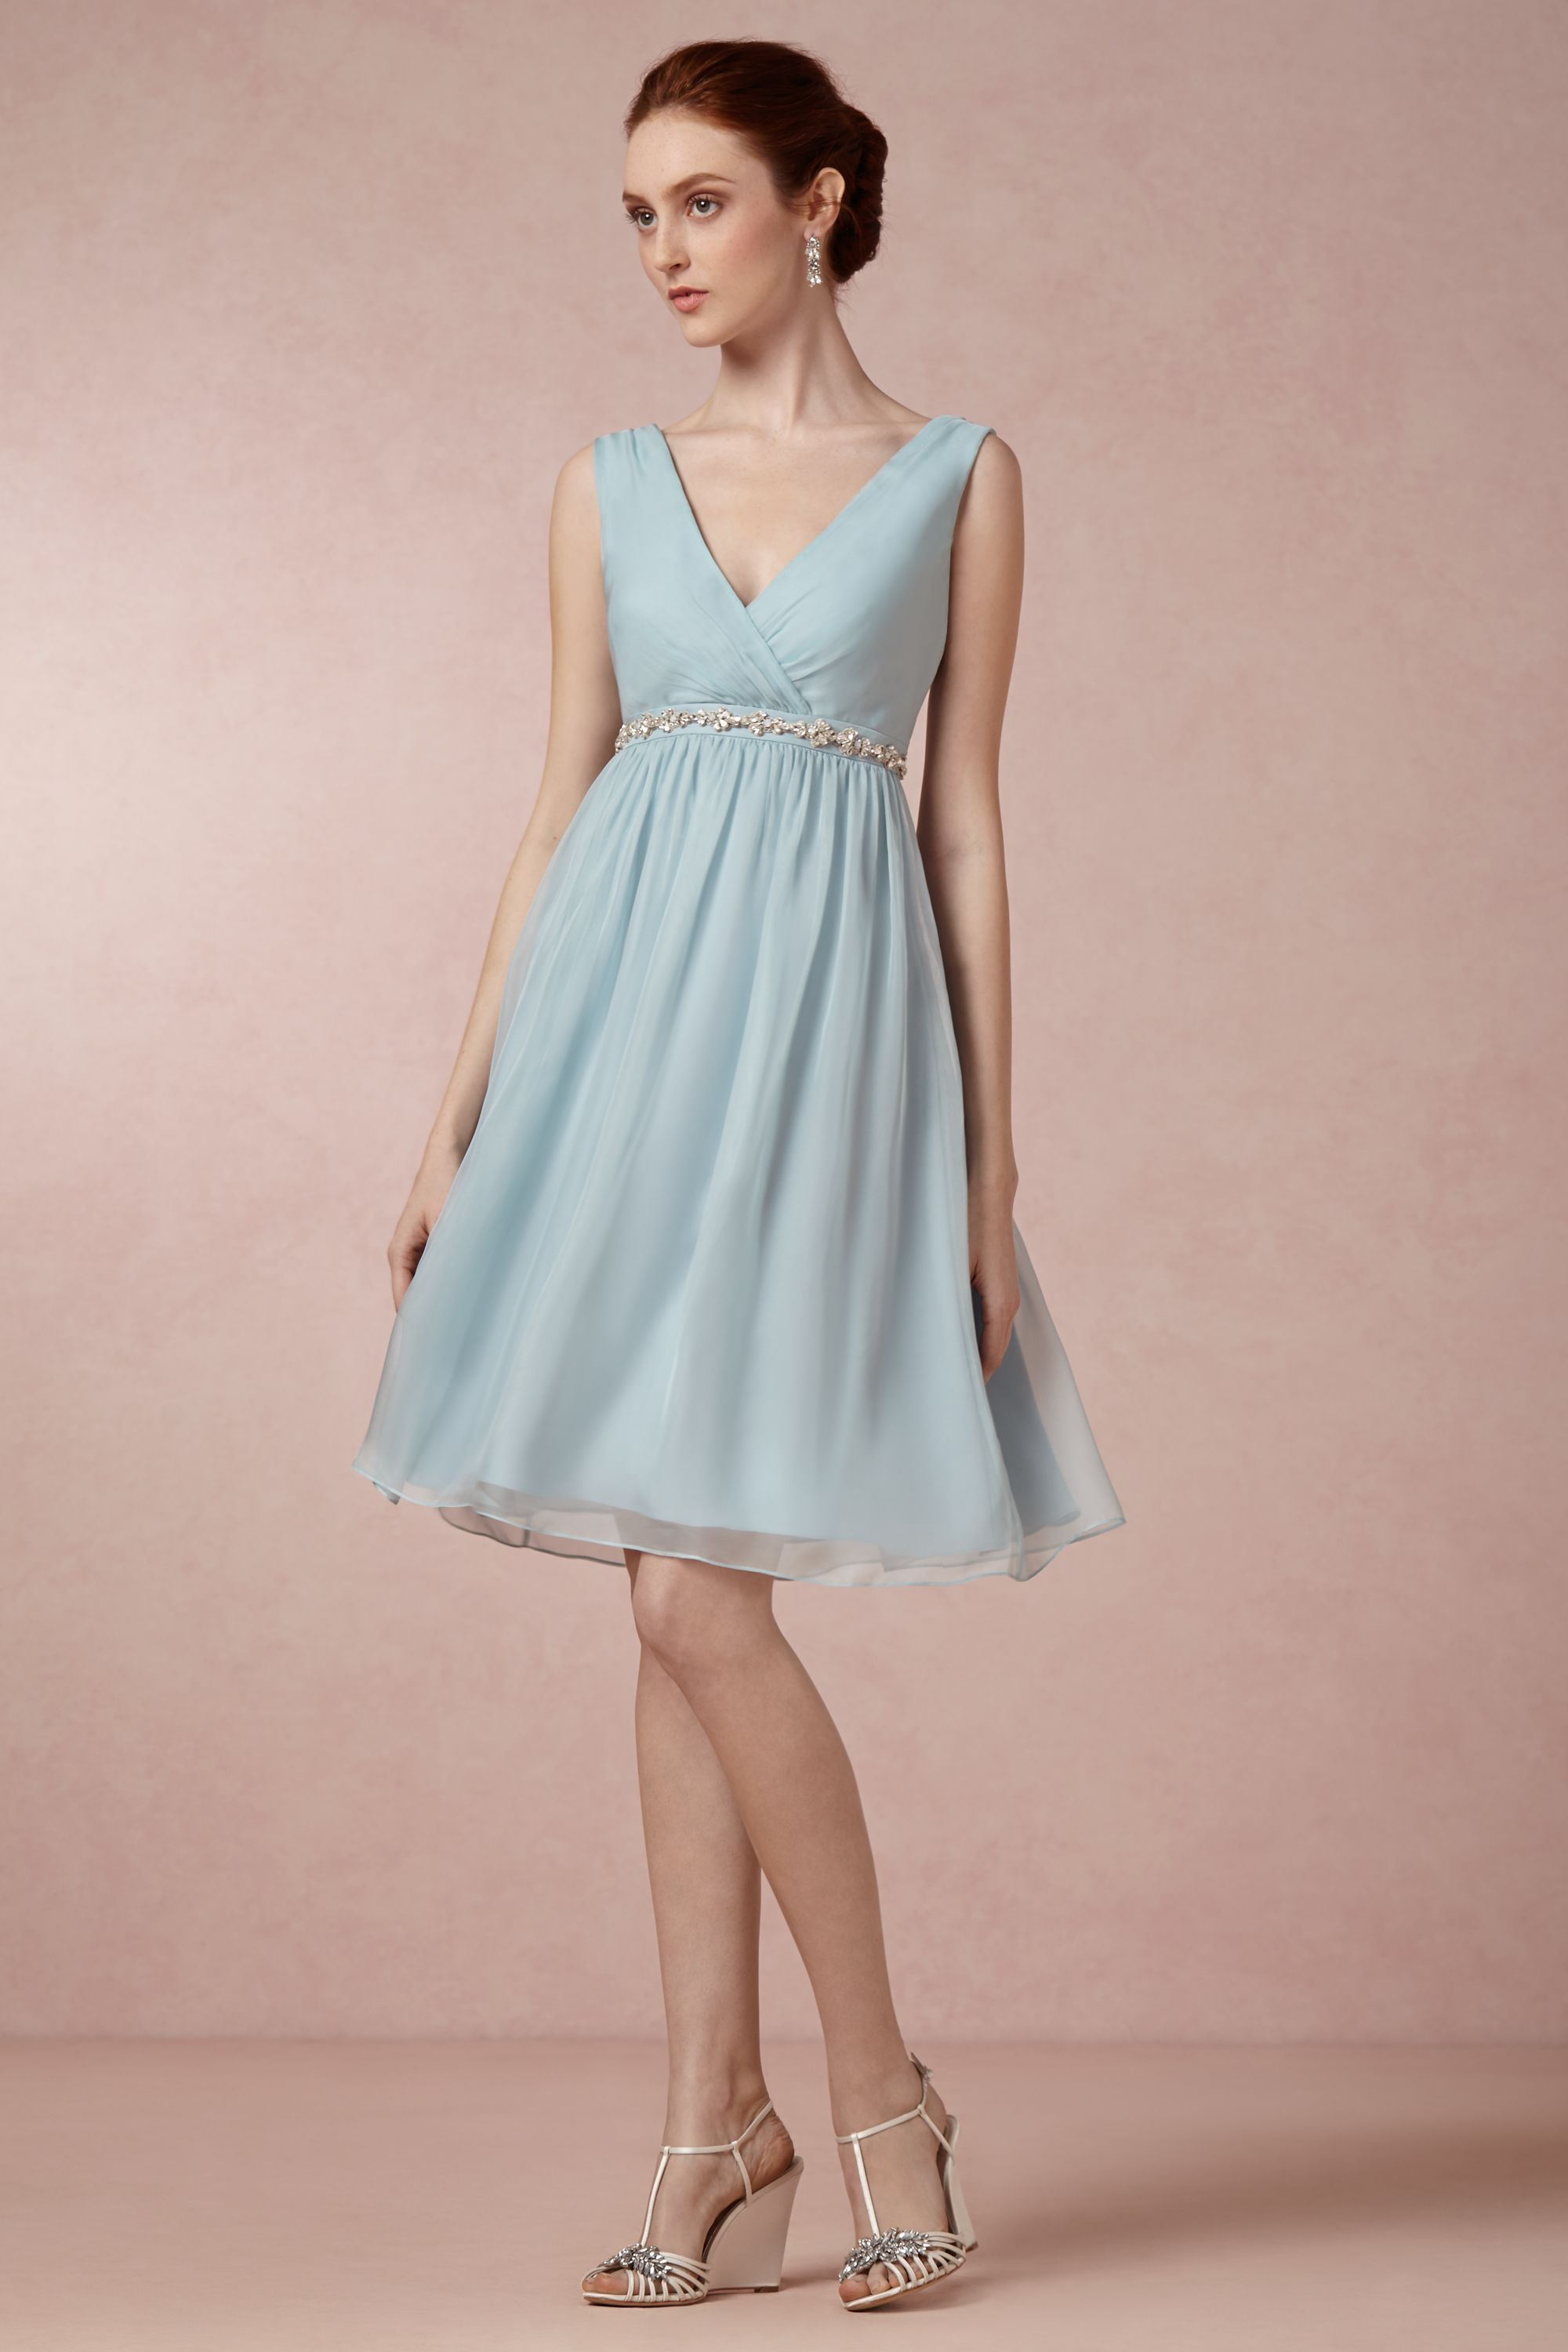 Rosalie Dress from BHLDN | fashion | Pinterest | Lingerie and Fashion